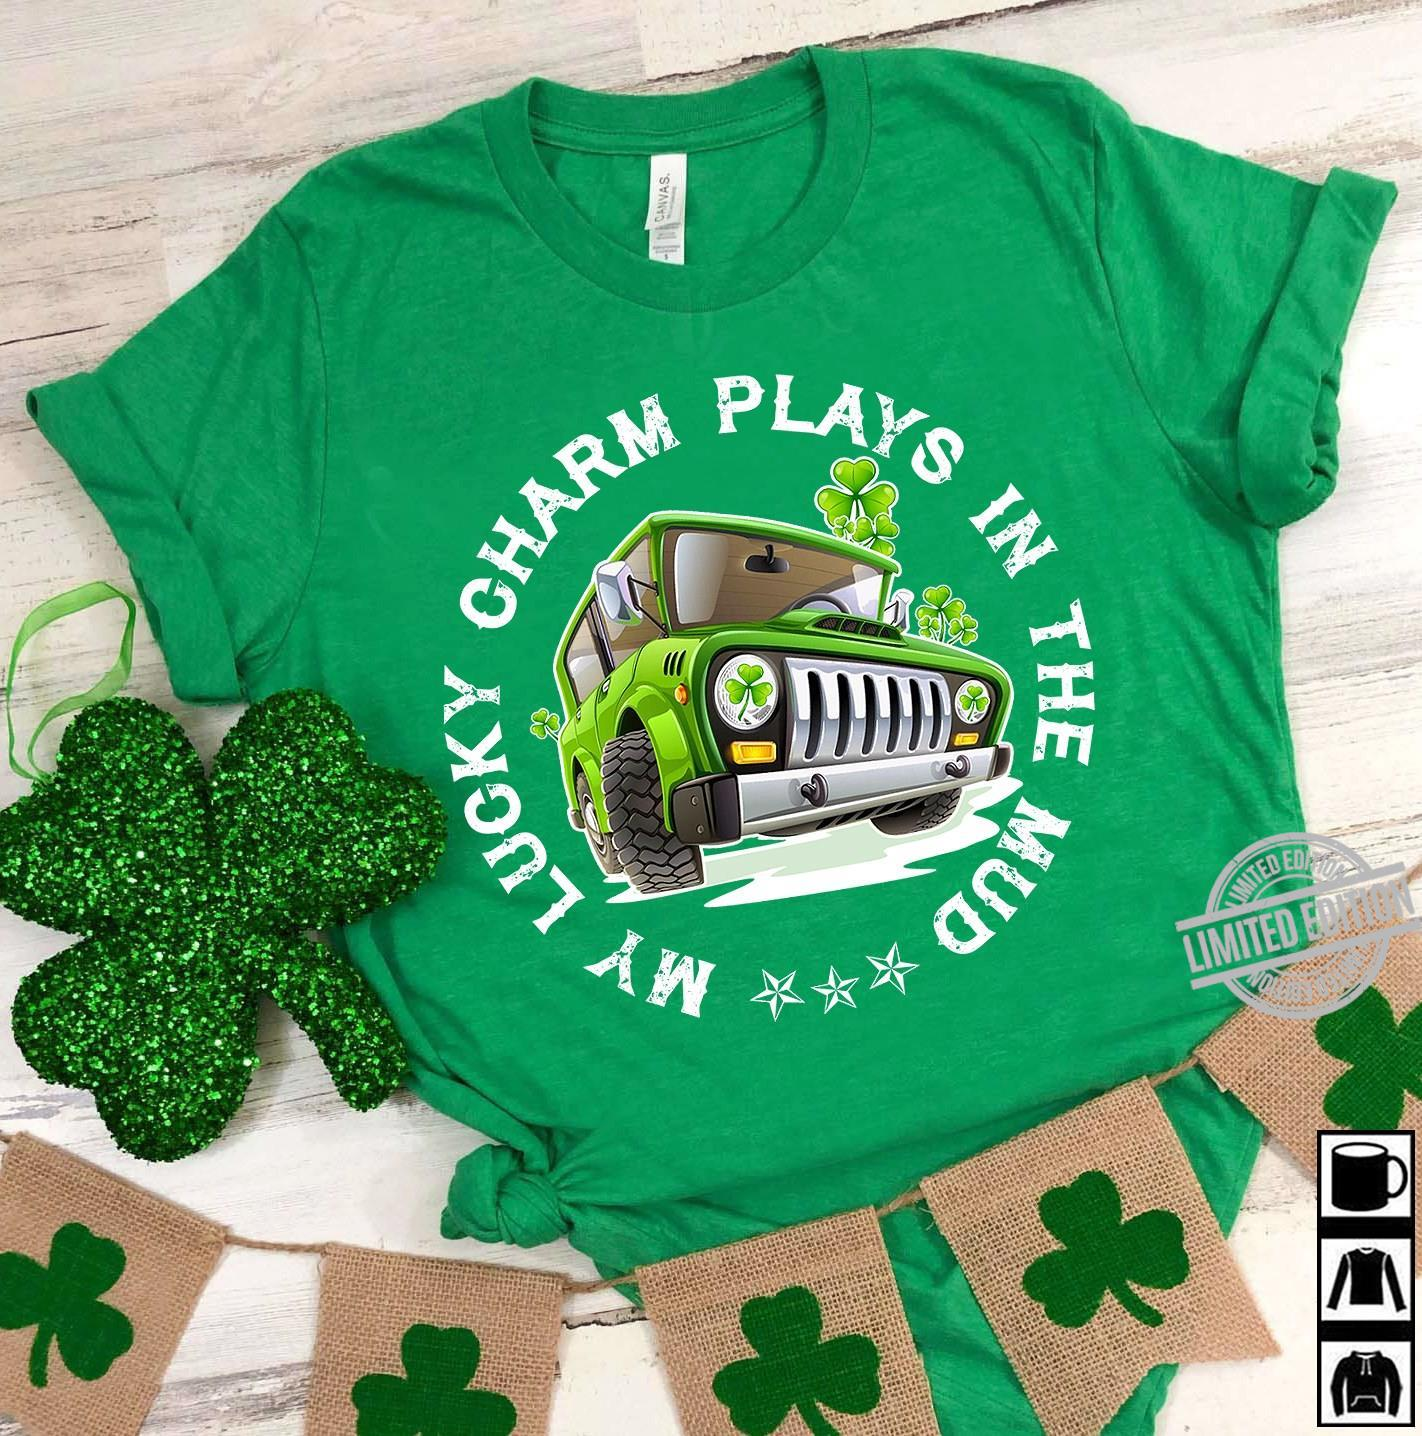 My Lucky Charm Plays In The Mud Shirt